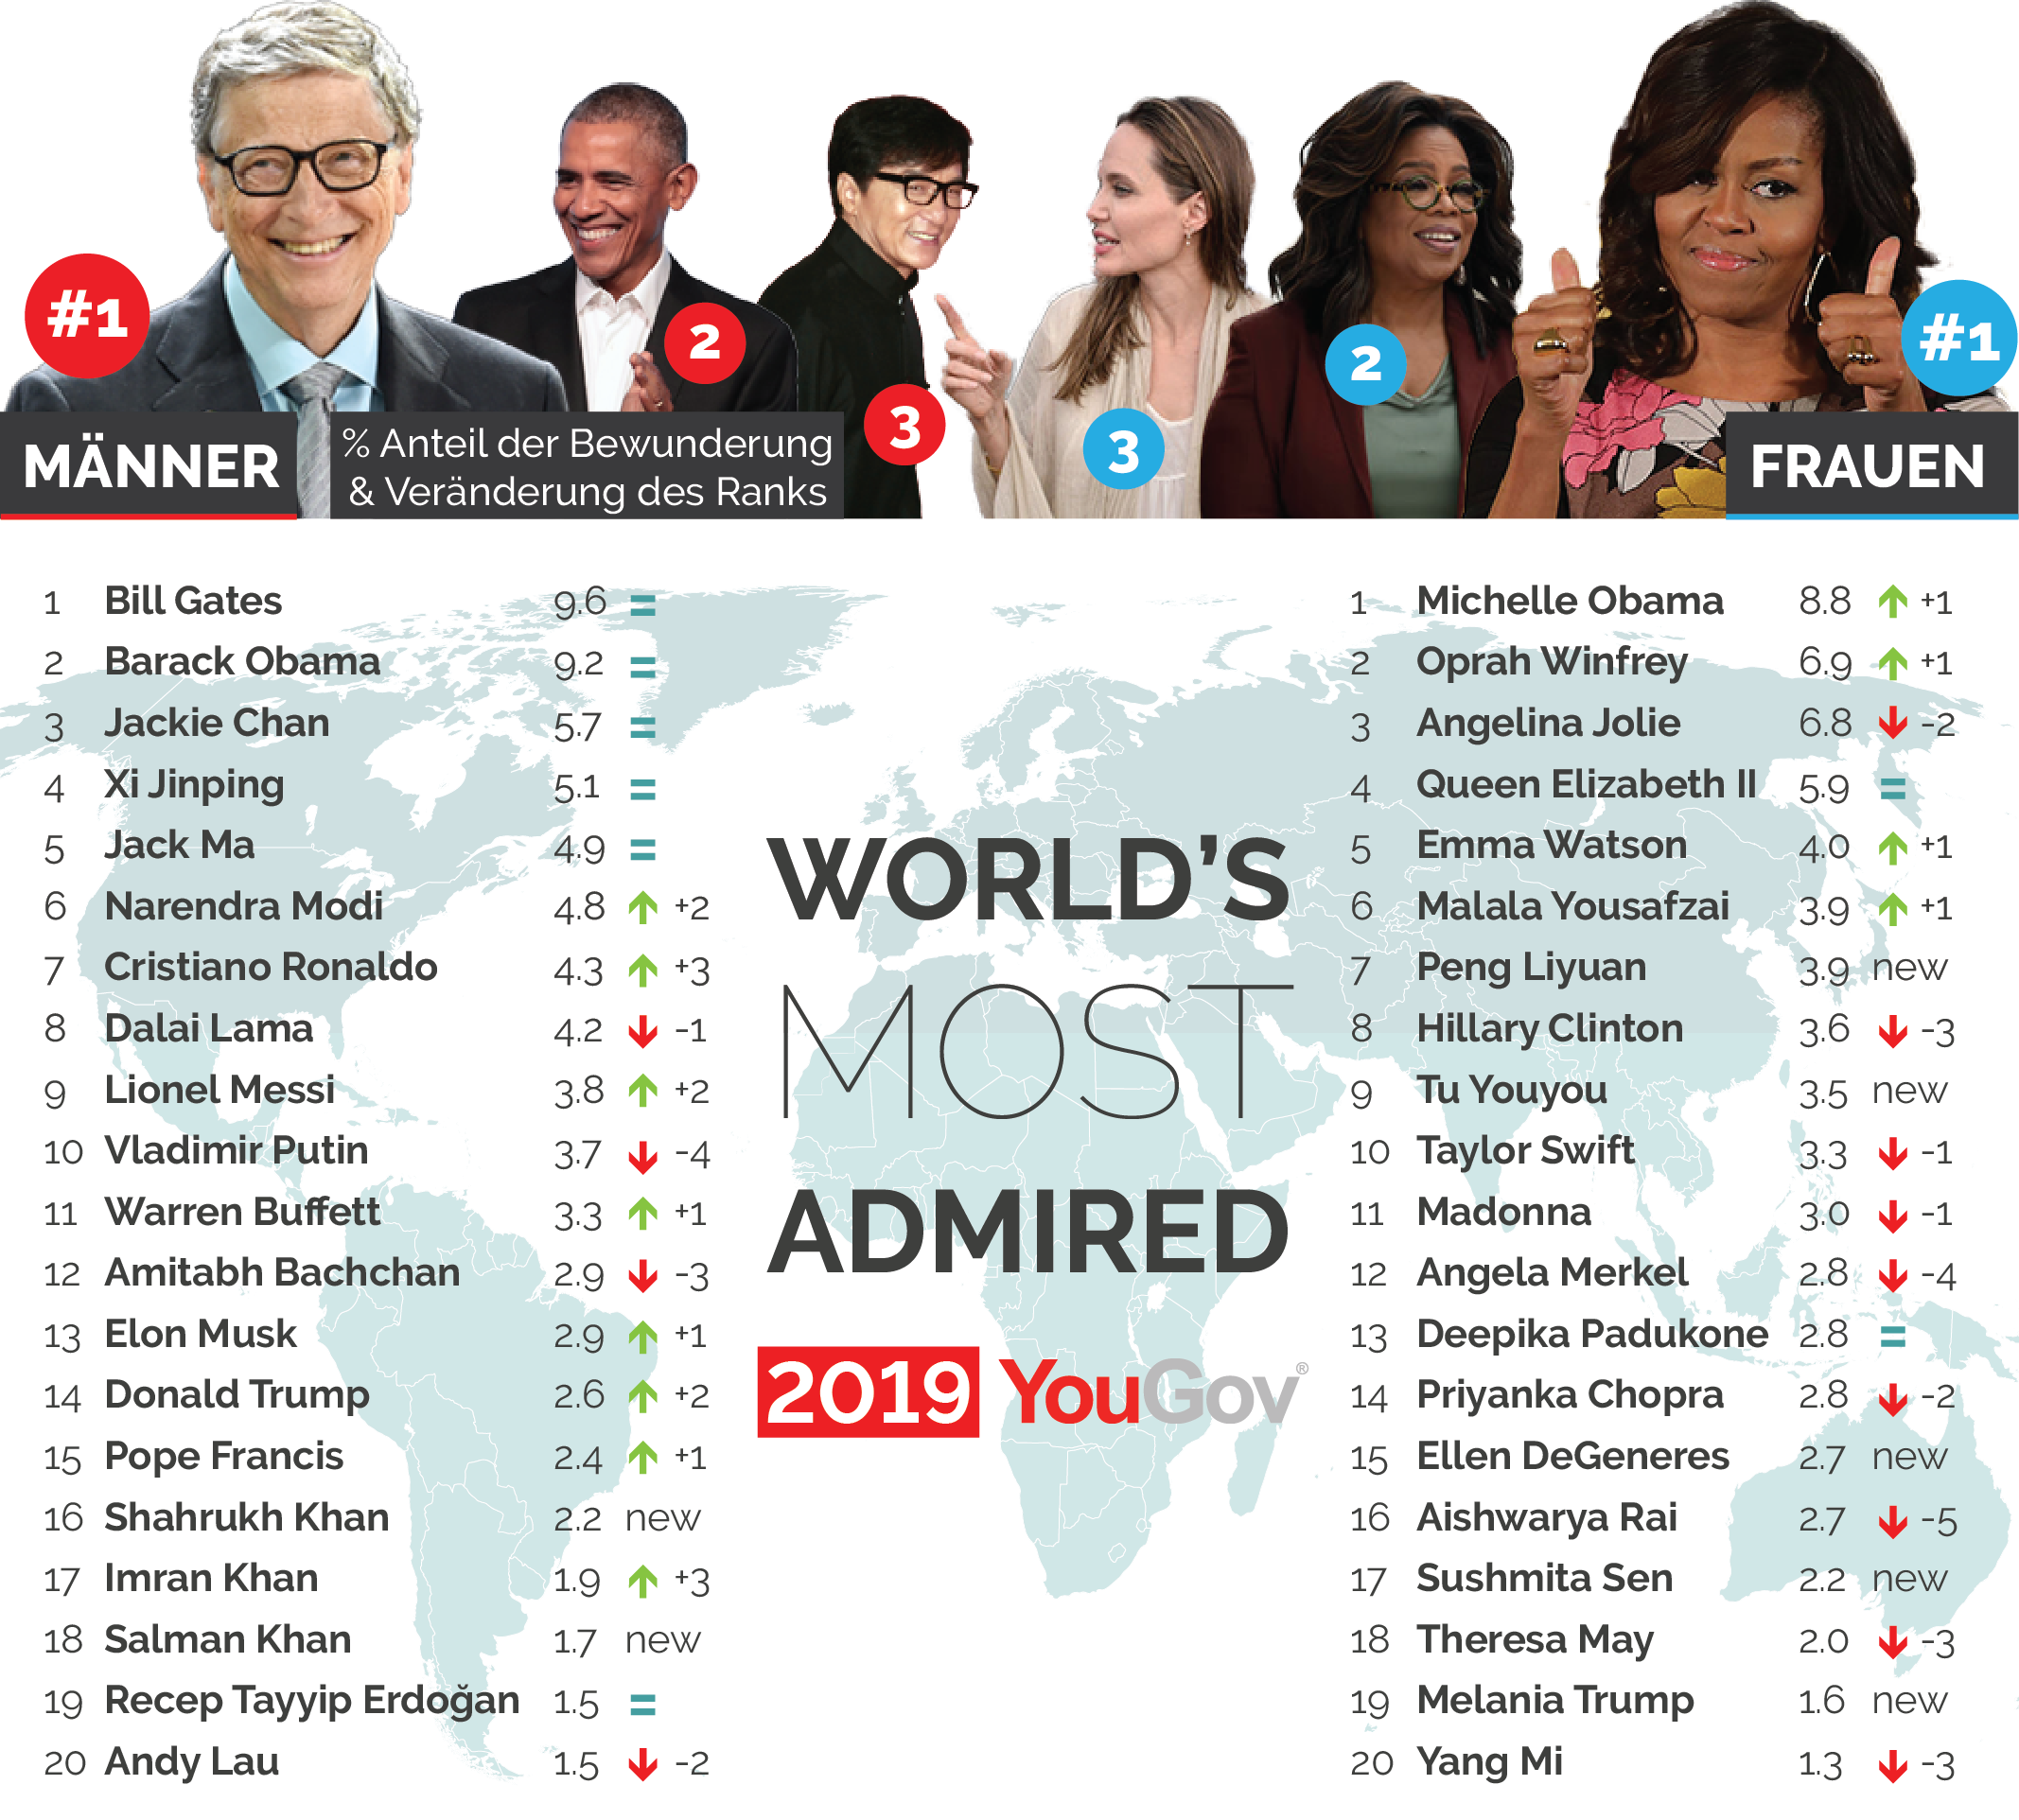 Top 20 YouGov World's Most Admired 2019